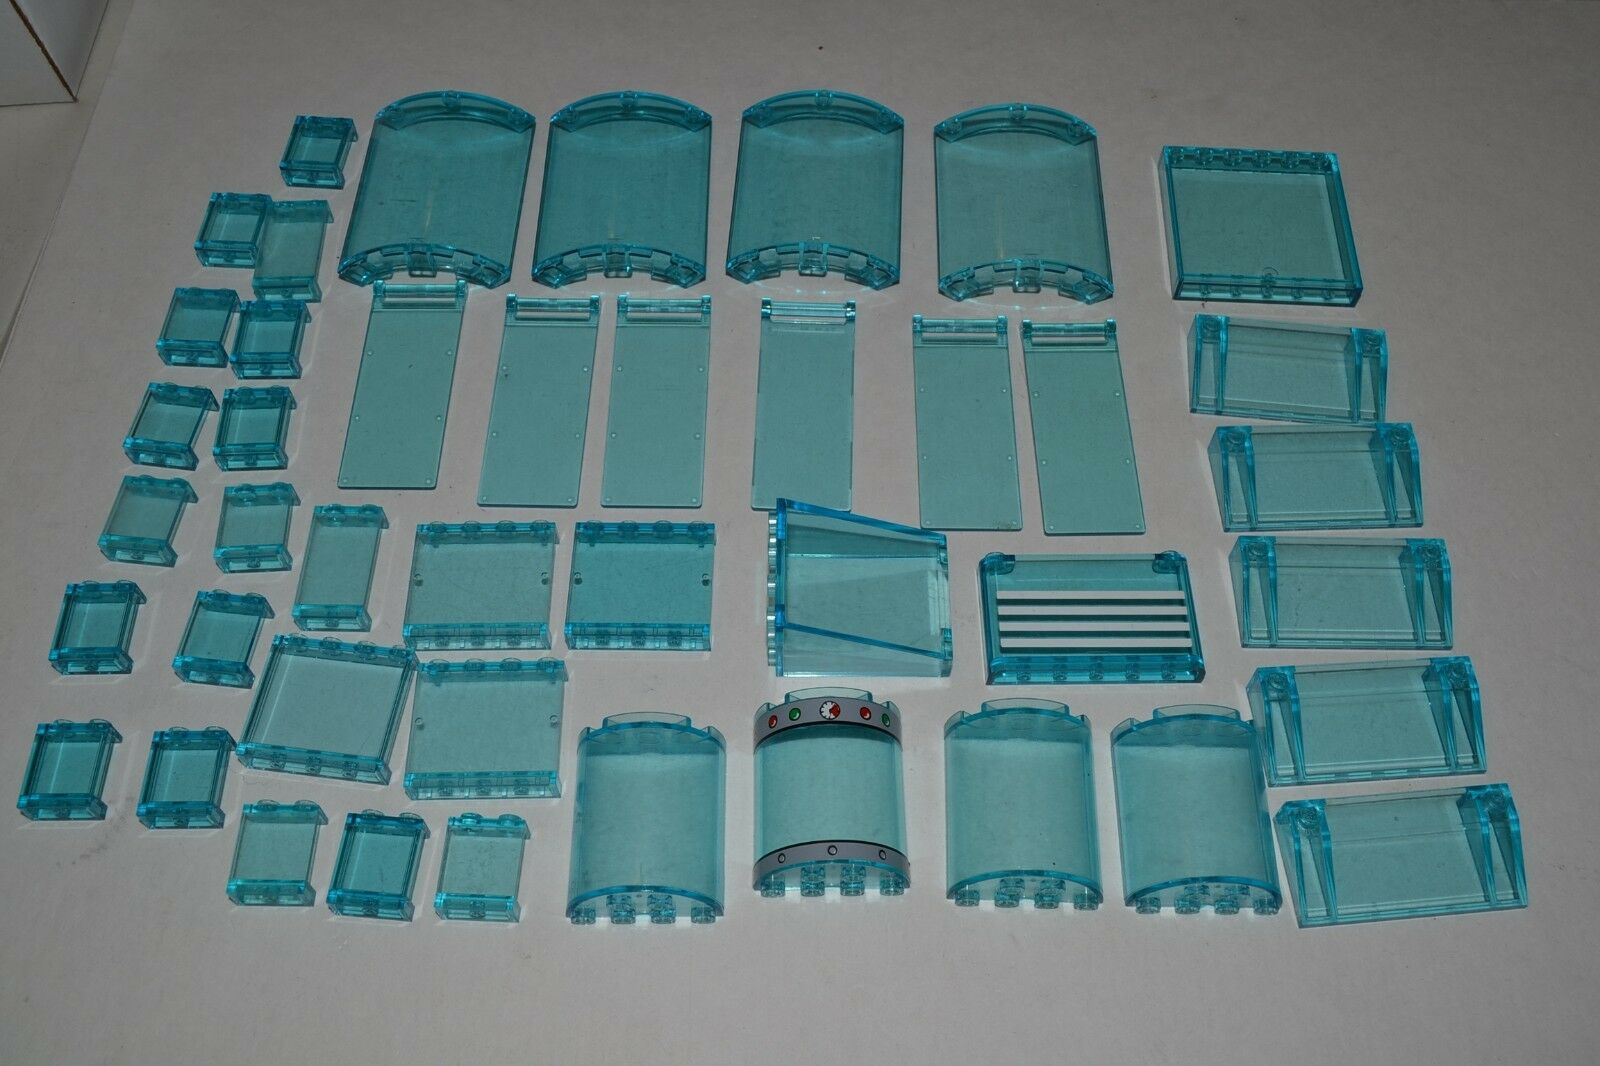 Lego Lot of Transparent Trans-Blau Panels Walls Parts Windows Ice ADKN